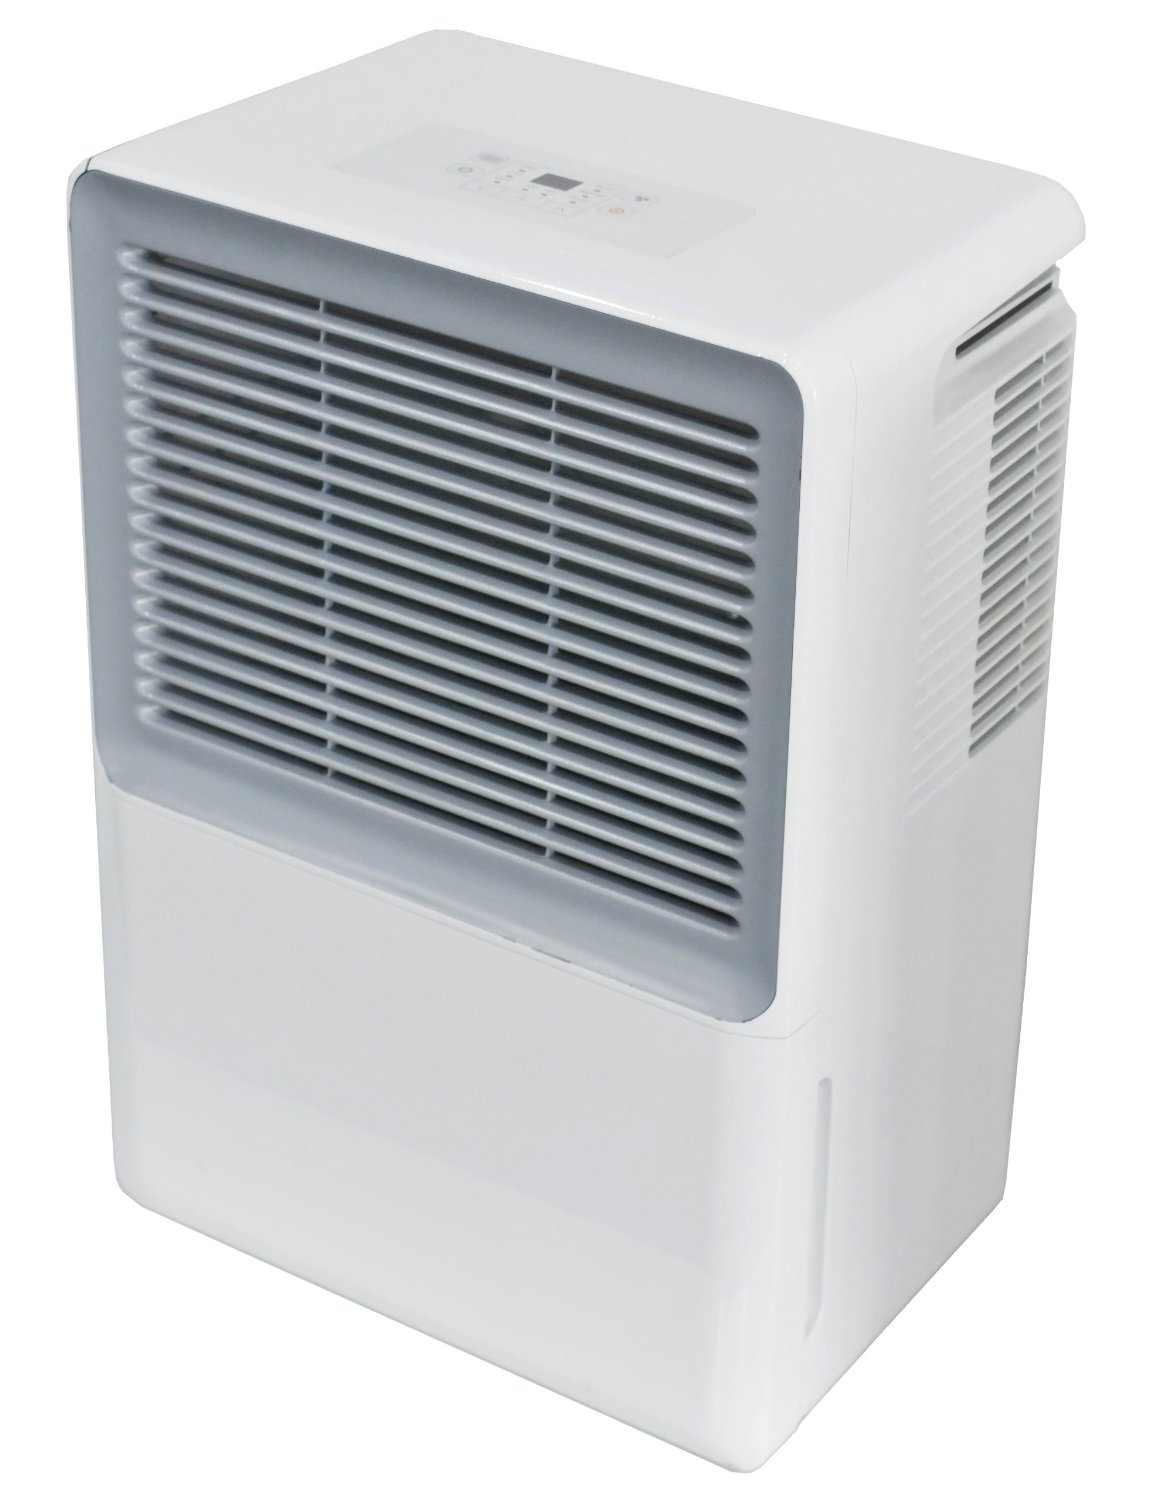 70 pint dehumidifier reviews SPT SD 71E Dehumidifier with Energy  #495159